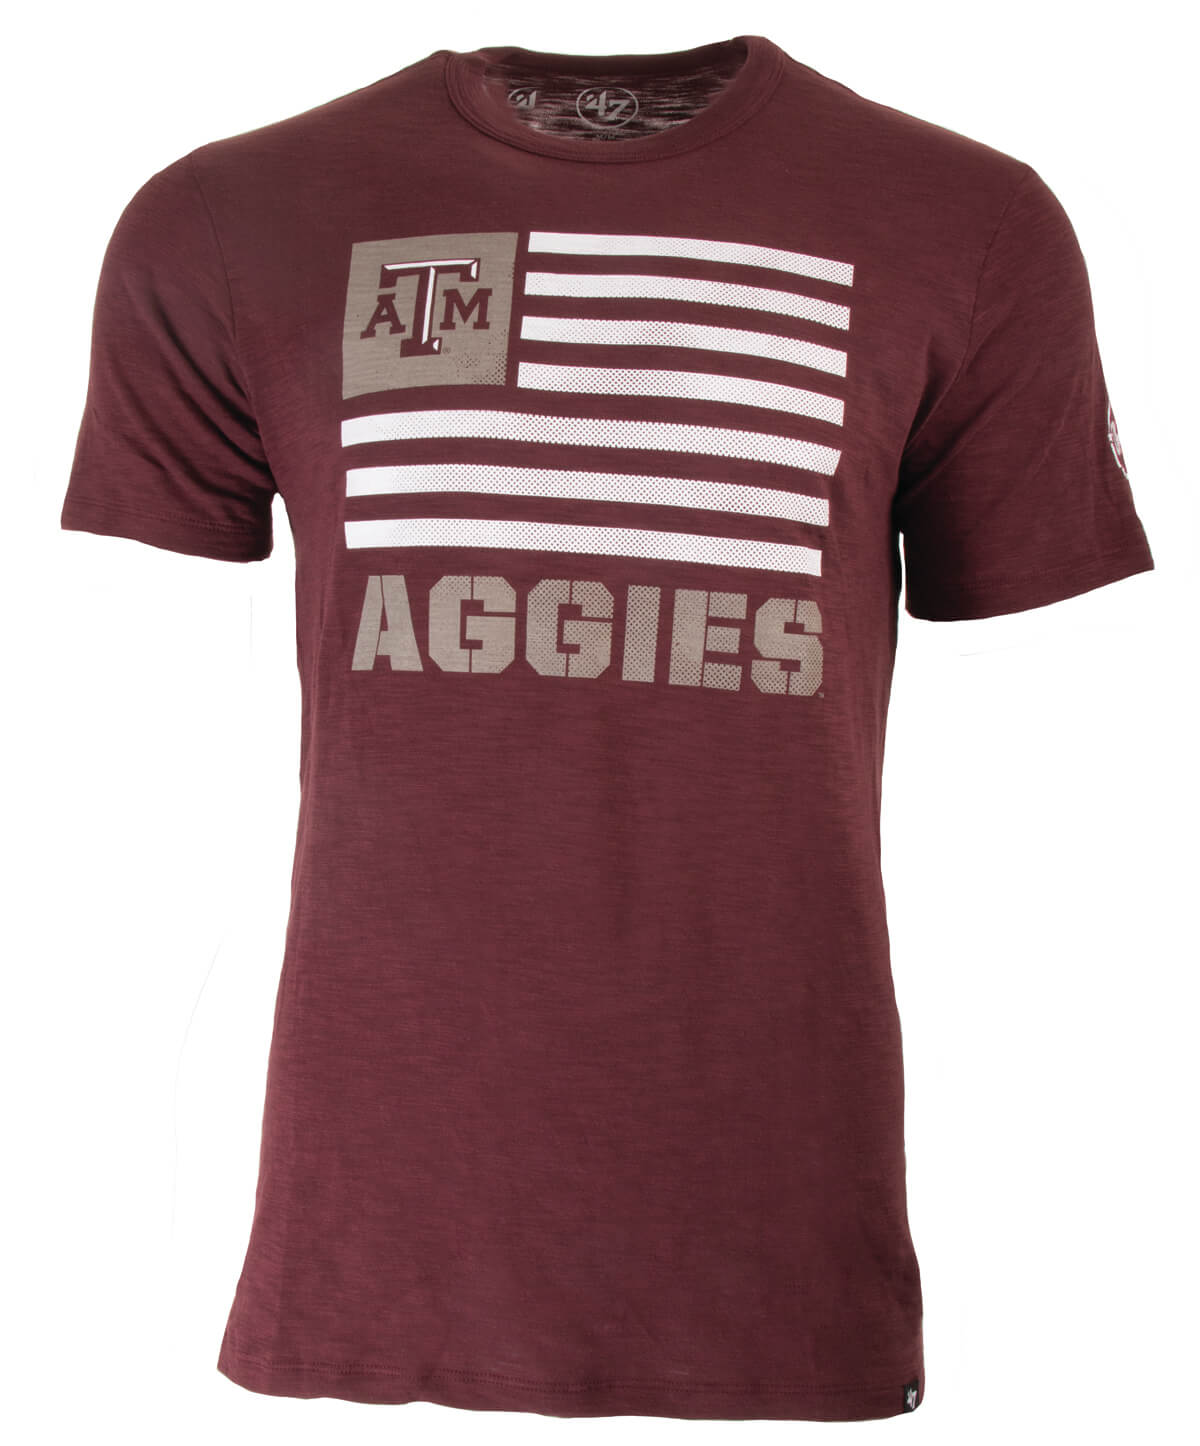 3994a60599e This Maroon Tee featuring a flag is the perfect addition to any Aggies  wardrobe! The best part about this shirt it that the sales from OHT brand  apparel ...